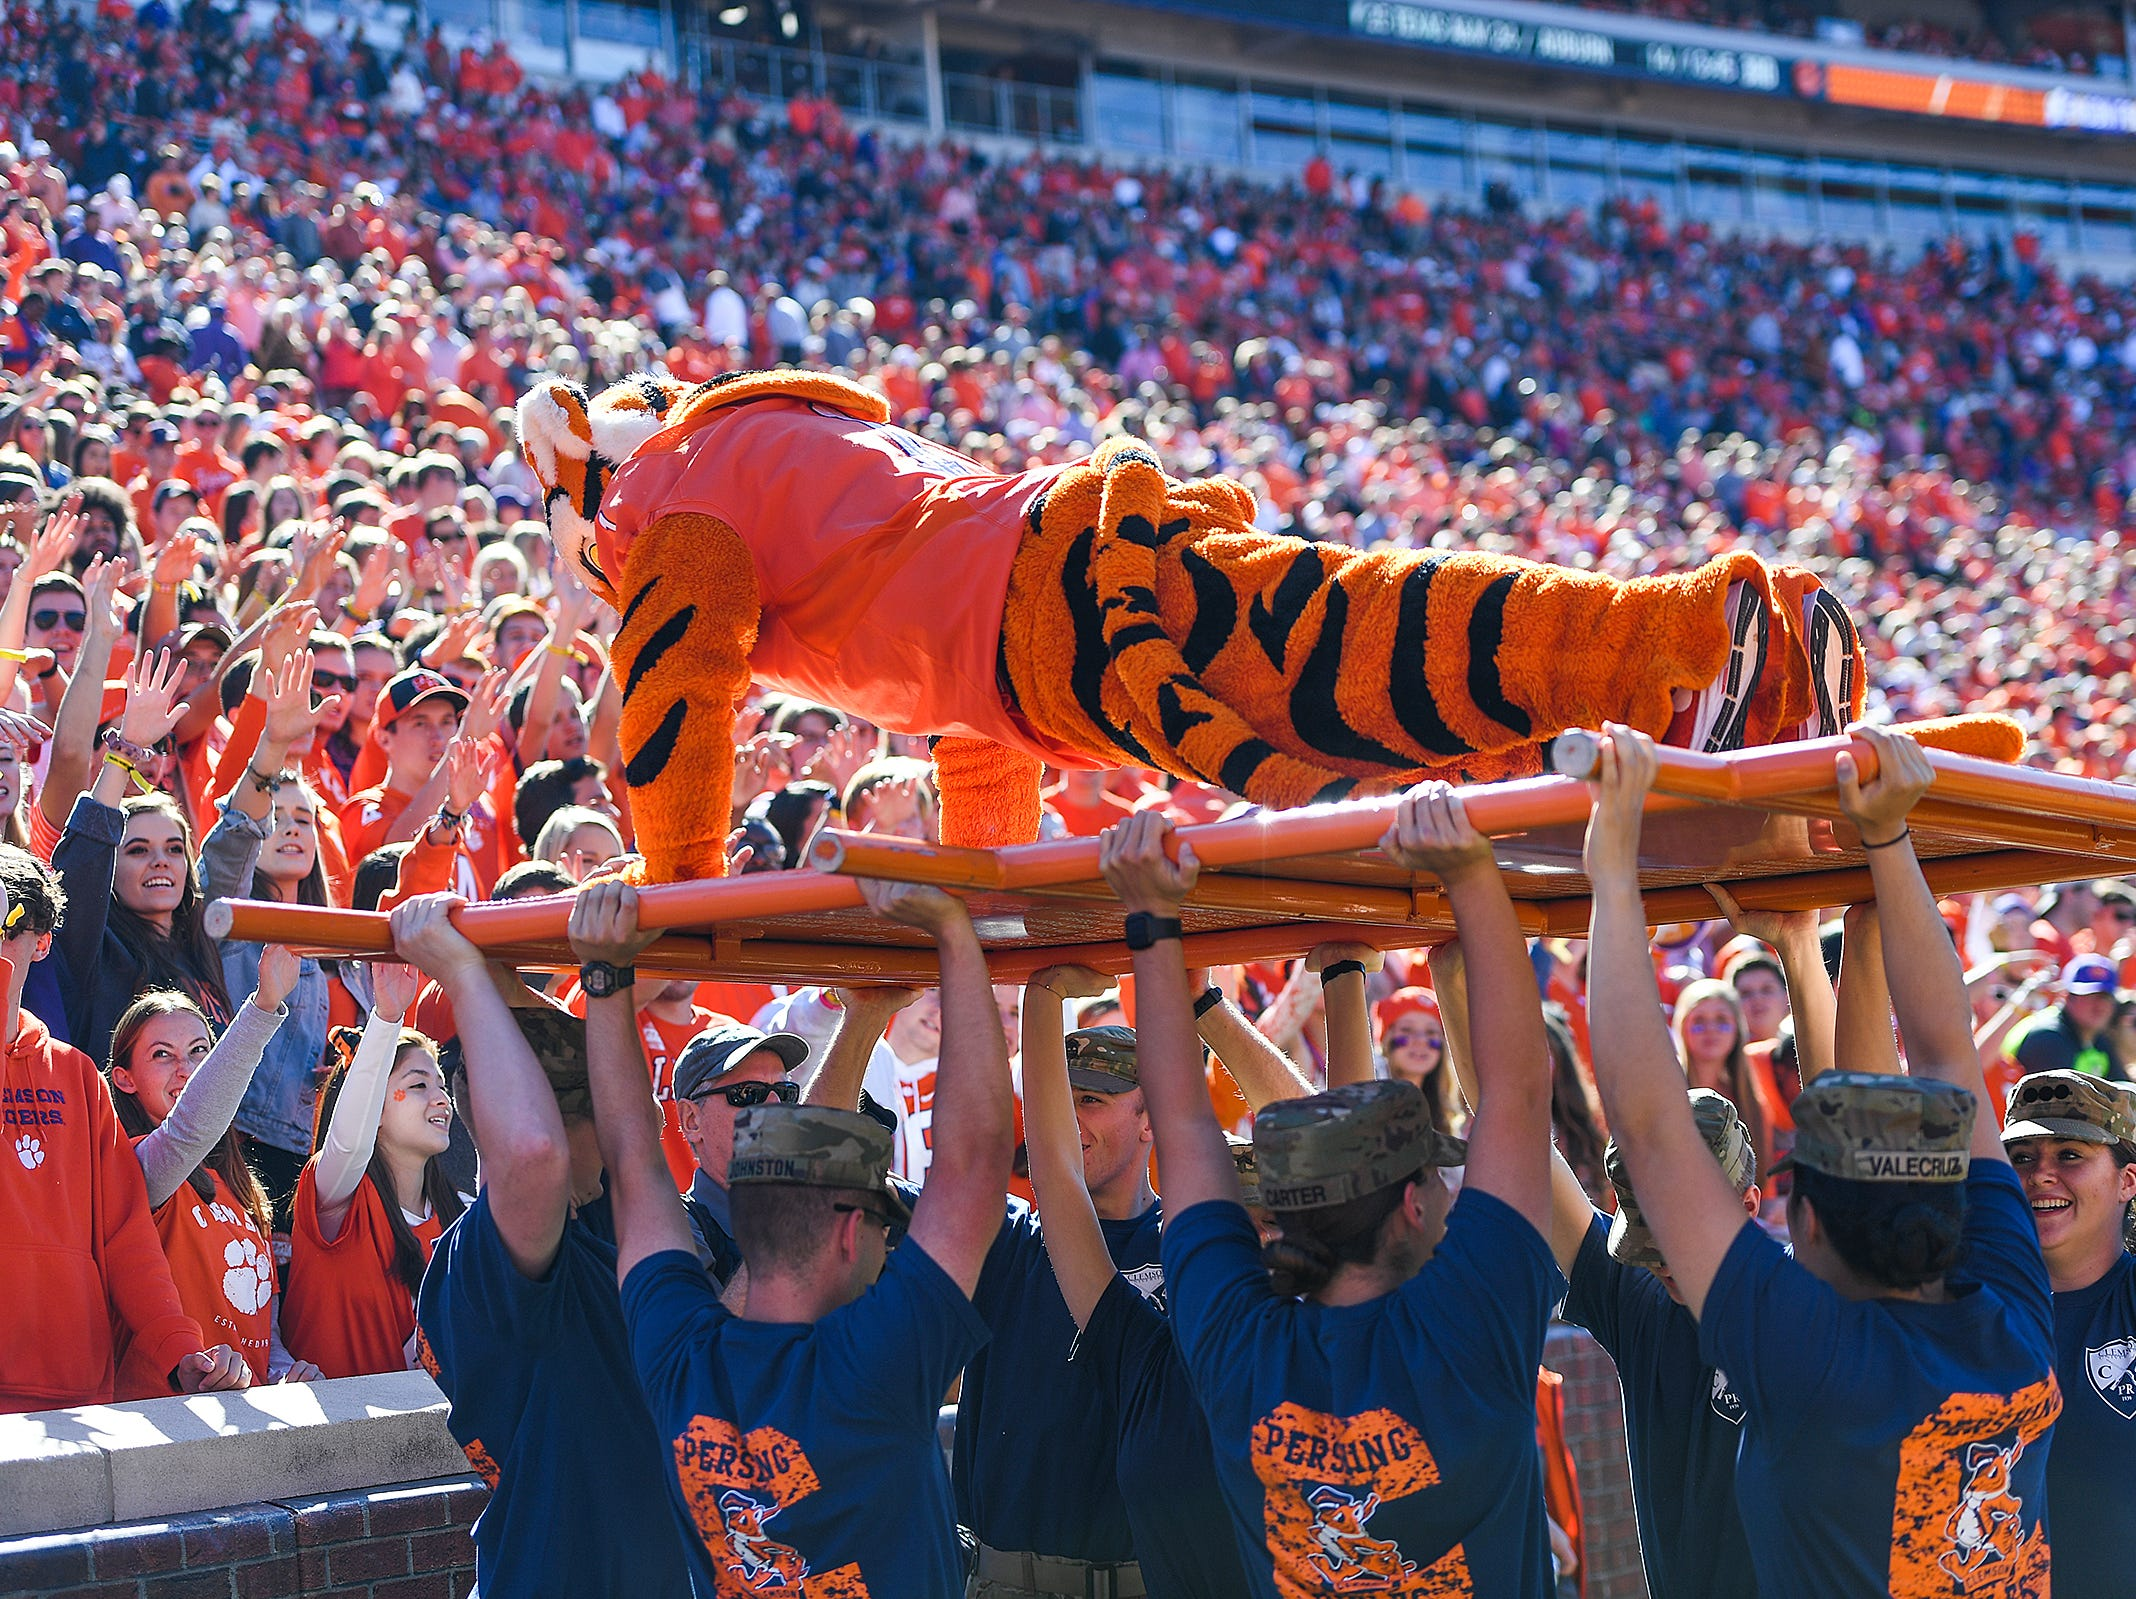 Clemson's Tiger does push ups after a Tiger score against Louisville during the 3rd quarter Saturday, November 3, 2018 at Clemson's Memorial Stadium.